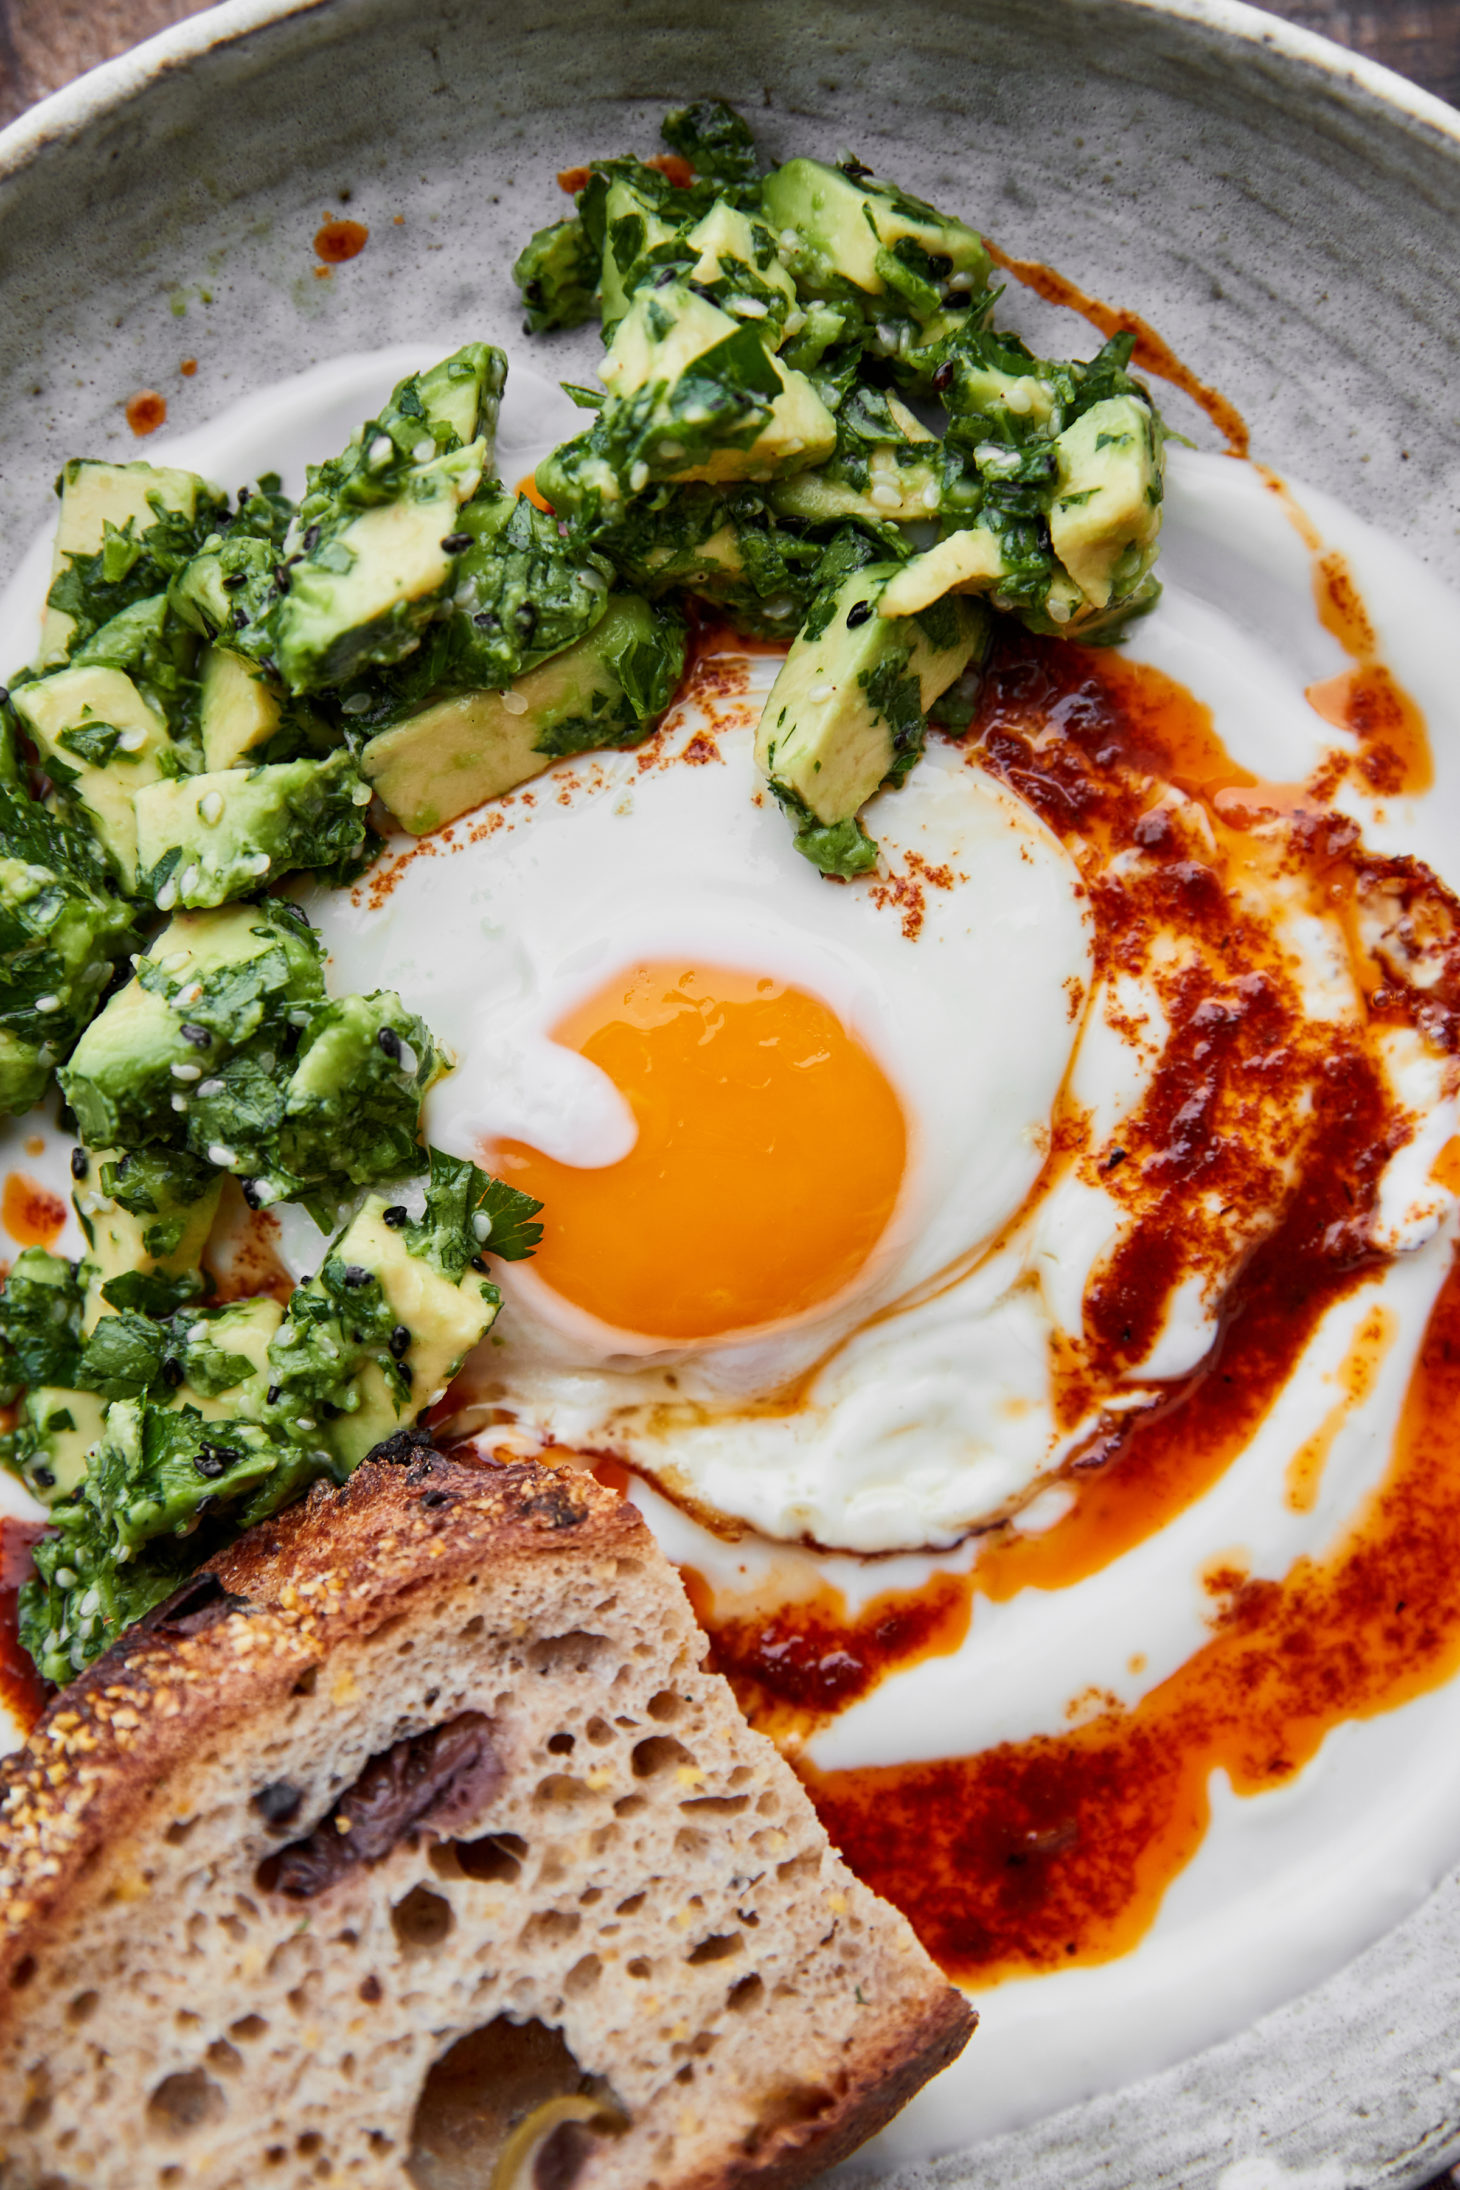 Close-up of a sunny-side egg on top of yogurt and topped with a fiery red butter sauce and diced avocado tossed in herbs.